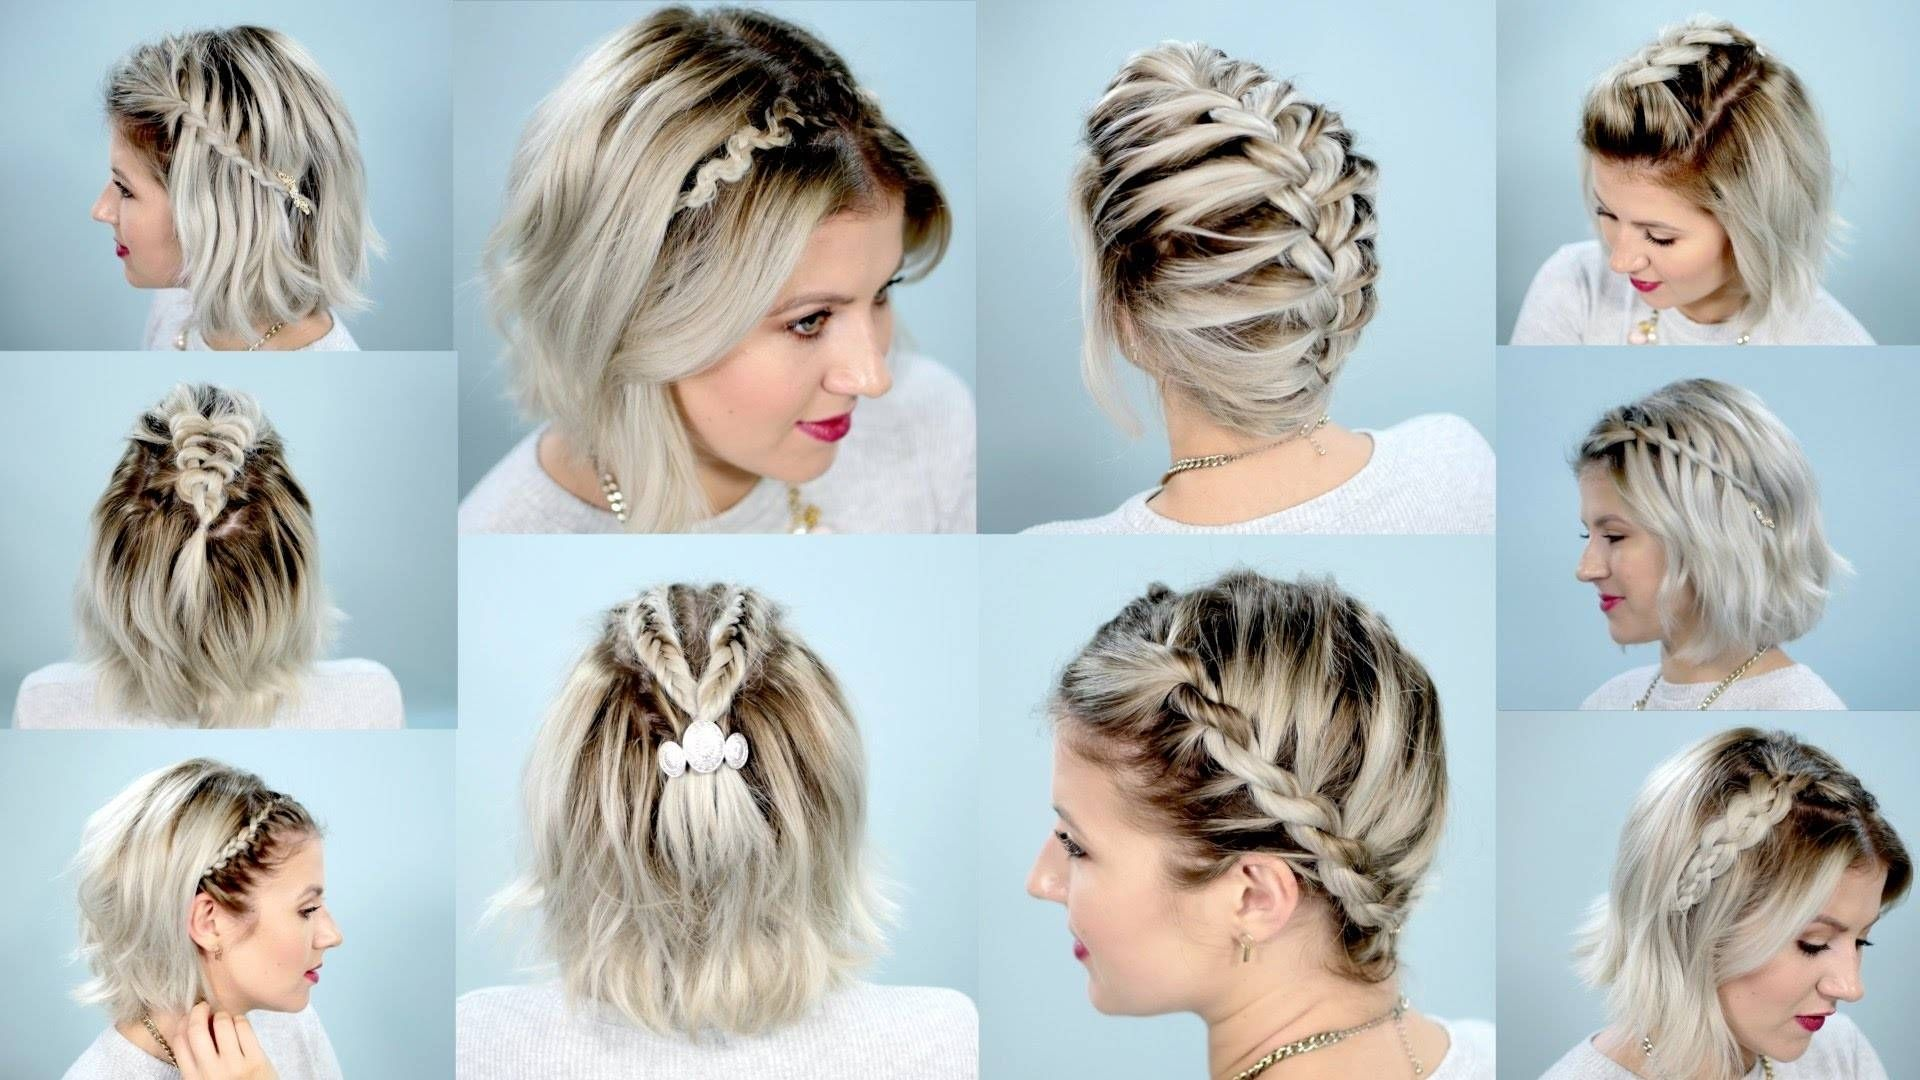 The Short Hair Braids Style | New Style | Pinterest | Short hair ...